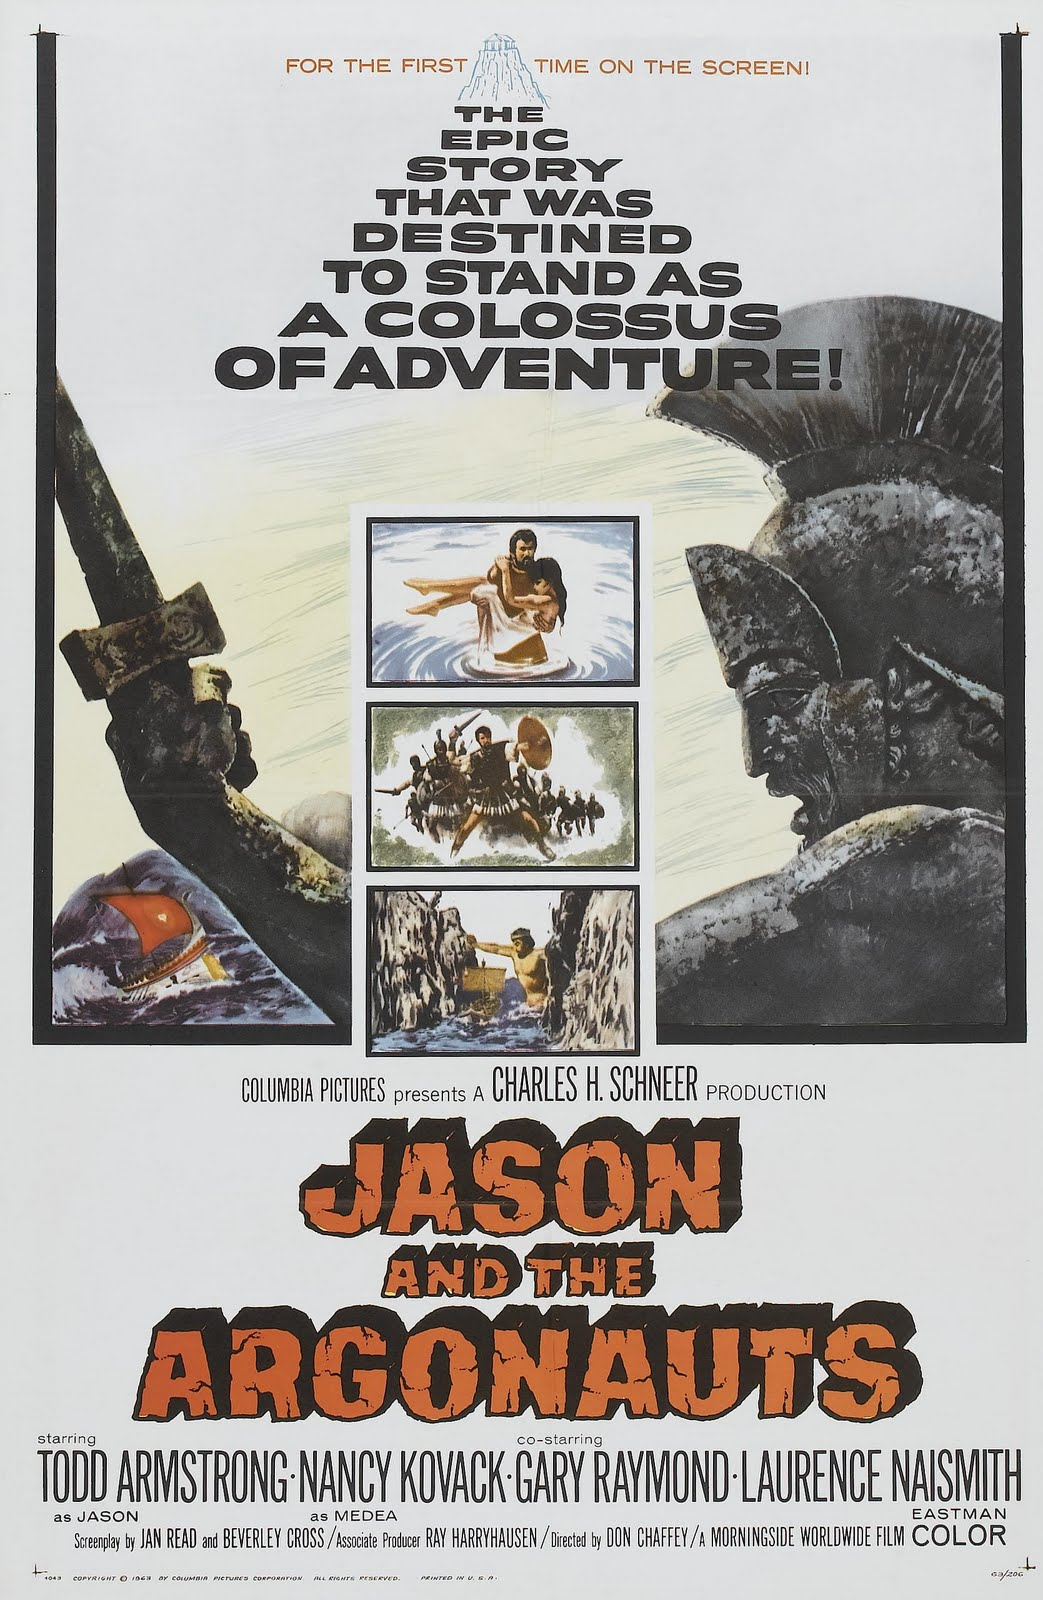 POSTER-JASON-AND-THE-ARGONAUTS1.jpg